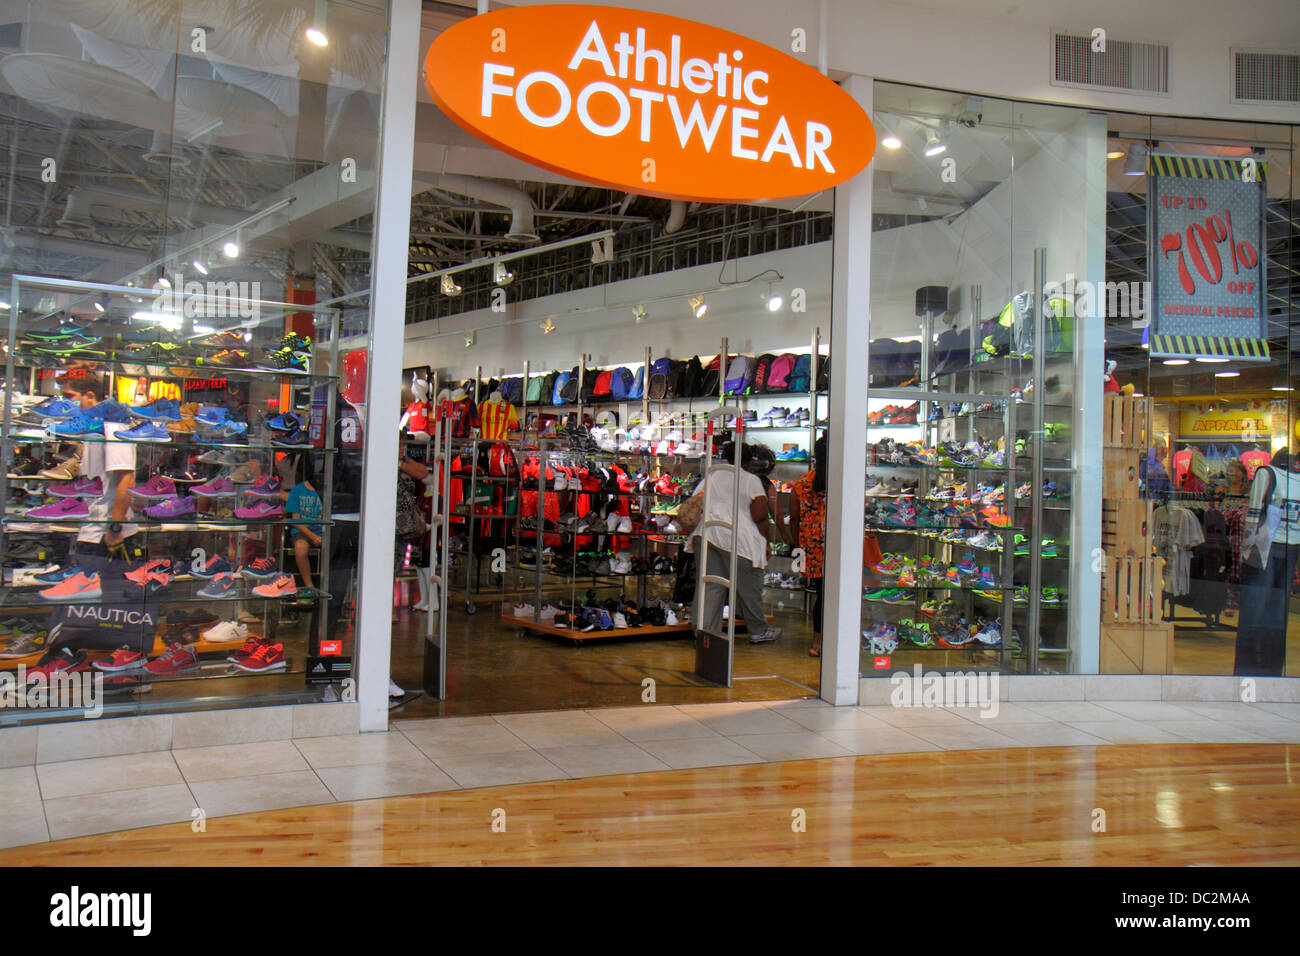 Florida Sunrise Fort Ft. Lauderdale Sawgrass Mills Mall shopping sale retail display front entrance Athletic Footwear - Stock Image